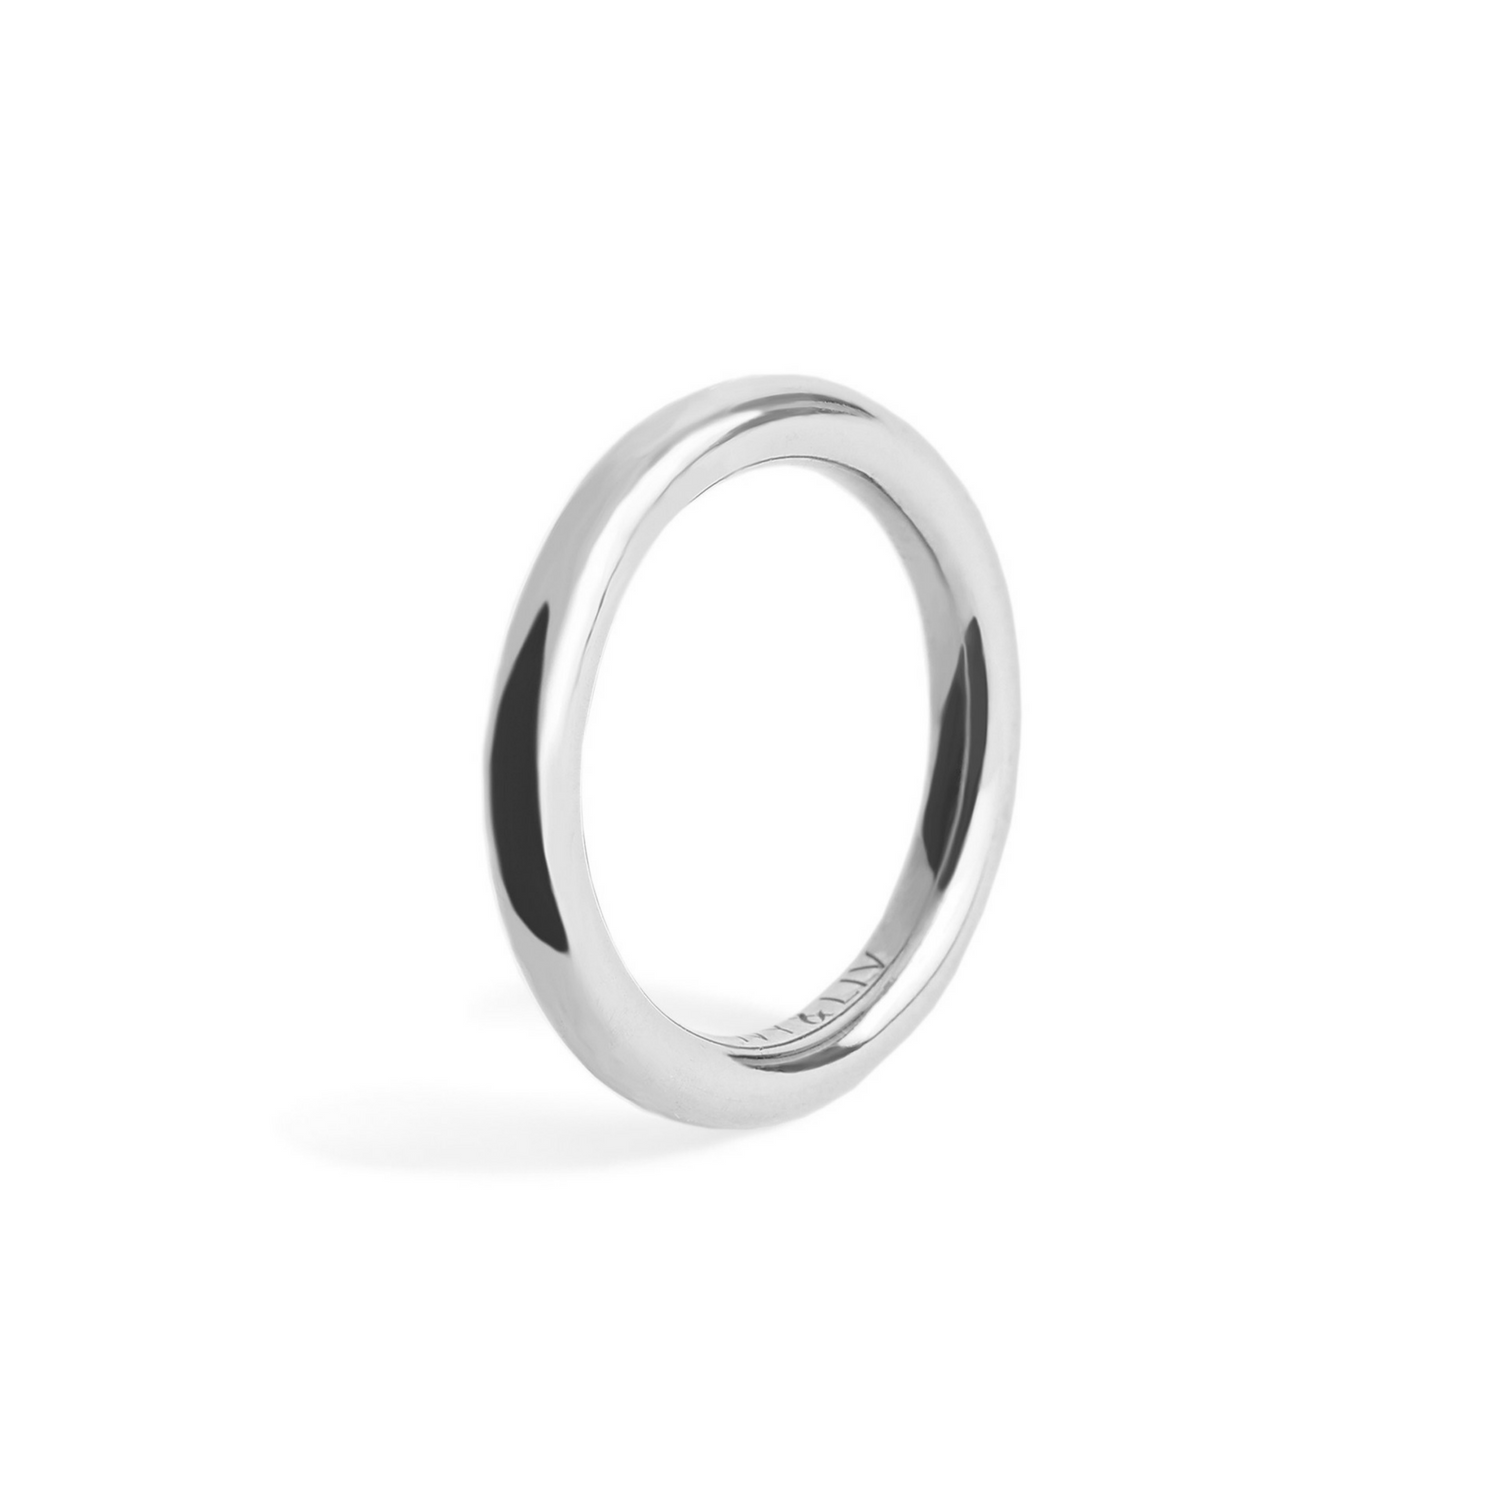 Elementary Ring 3.0 silver